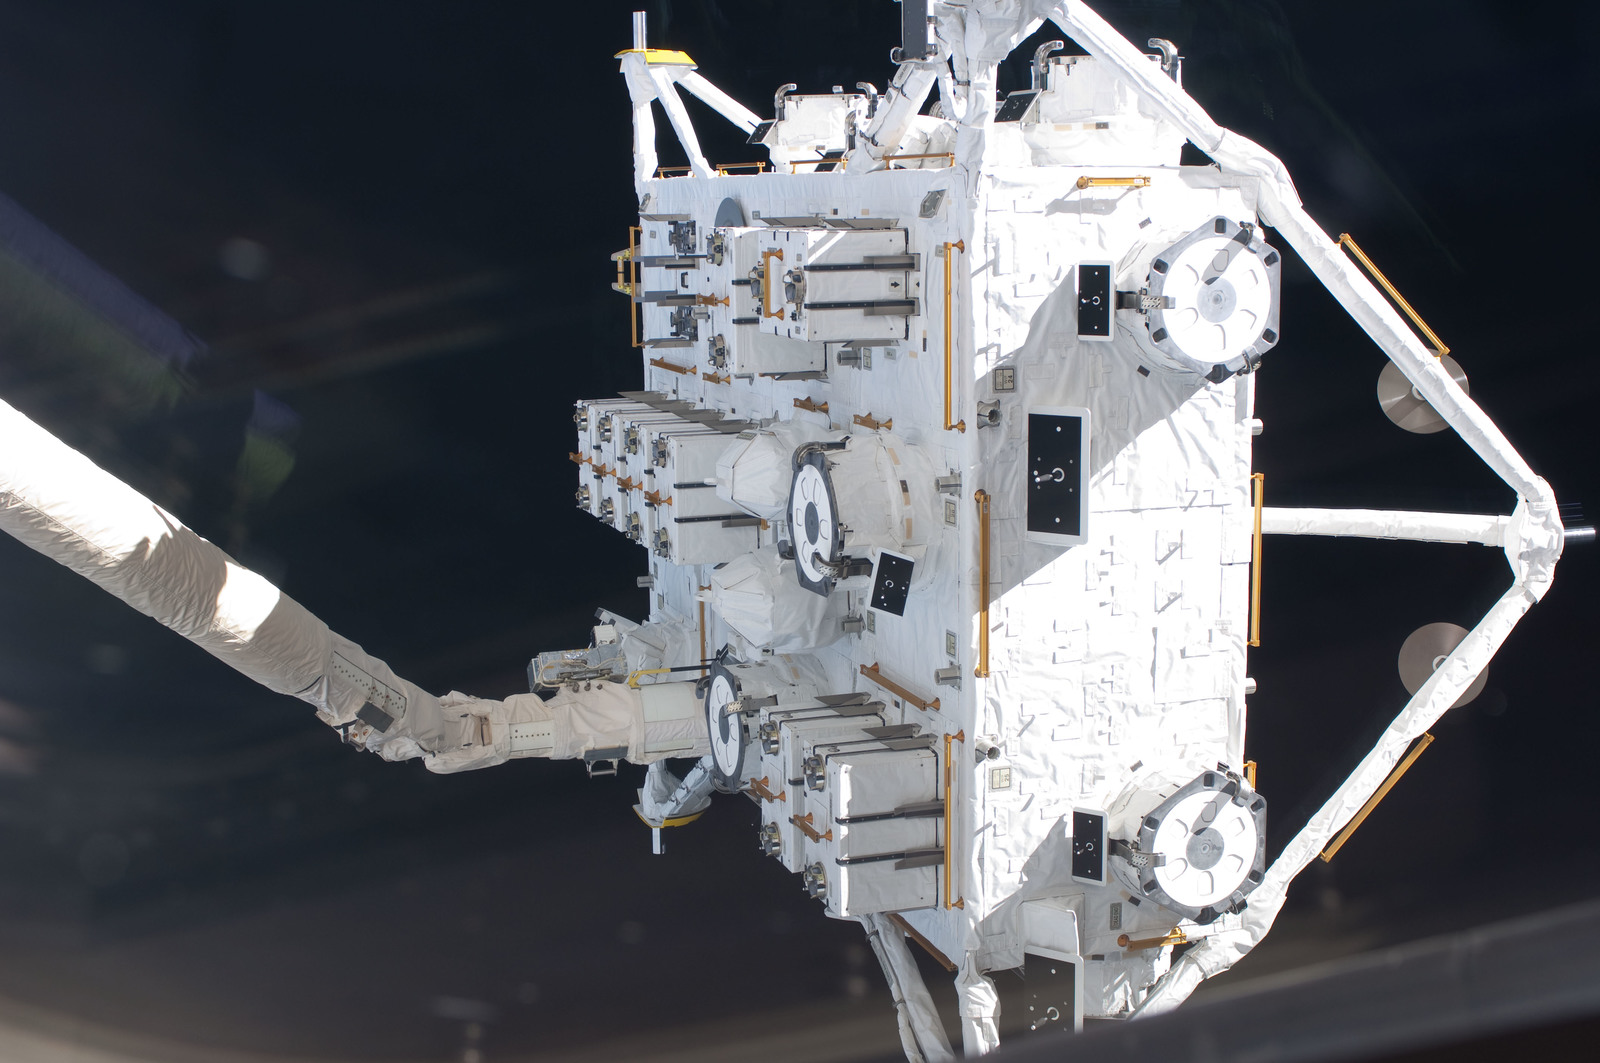 S127E006858 - STS-127 - SSRMS moves JEF during EVA-1 on STS-127 / Expedition 20 Joint Operations